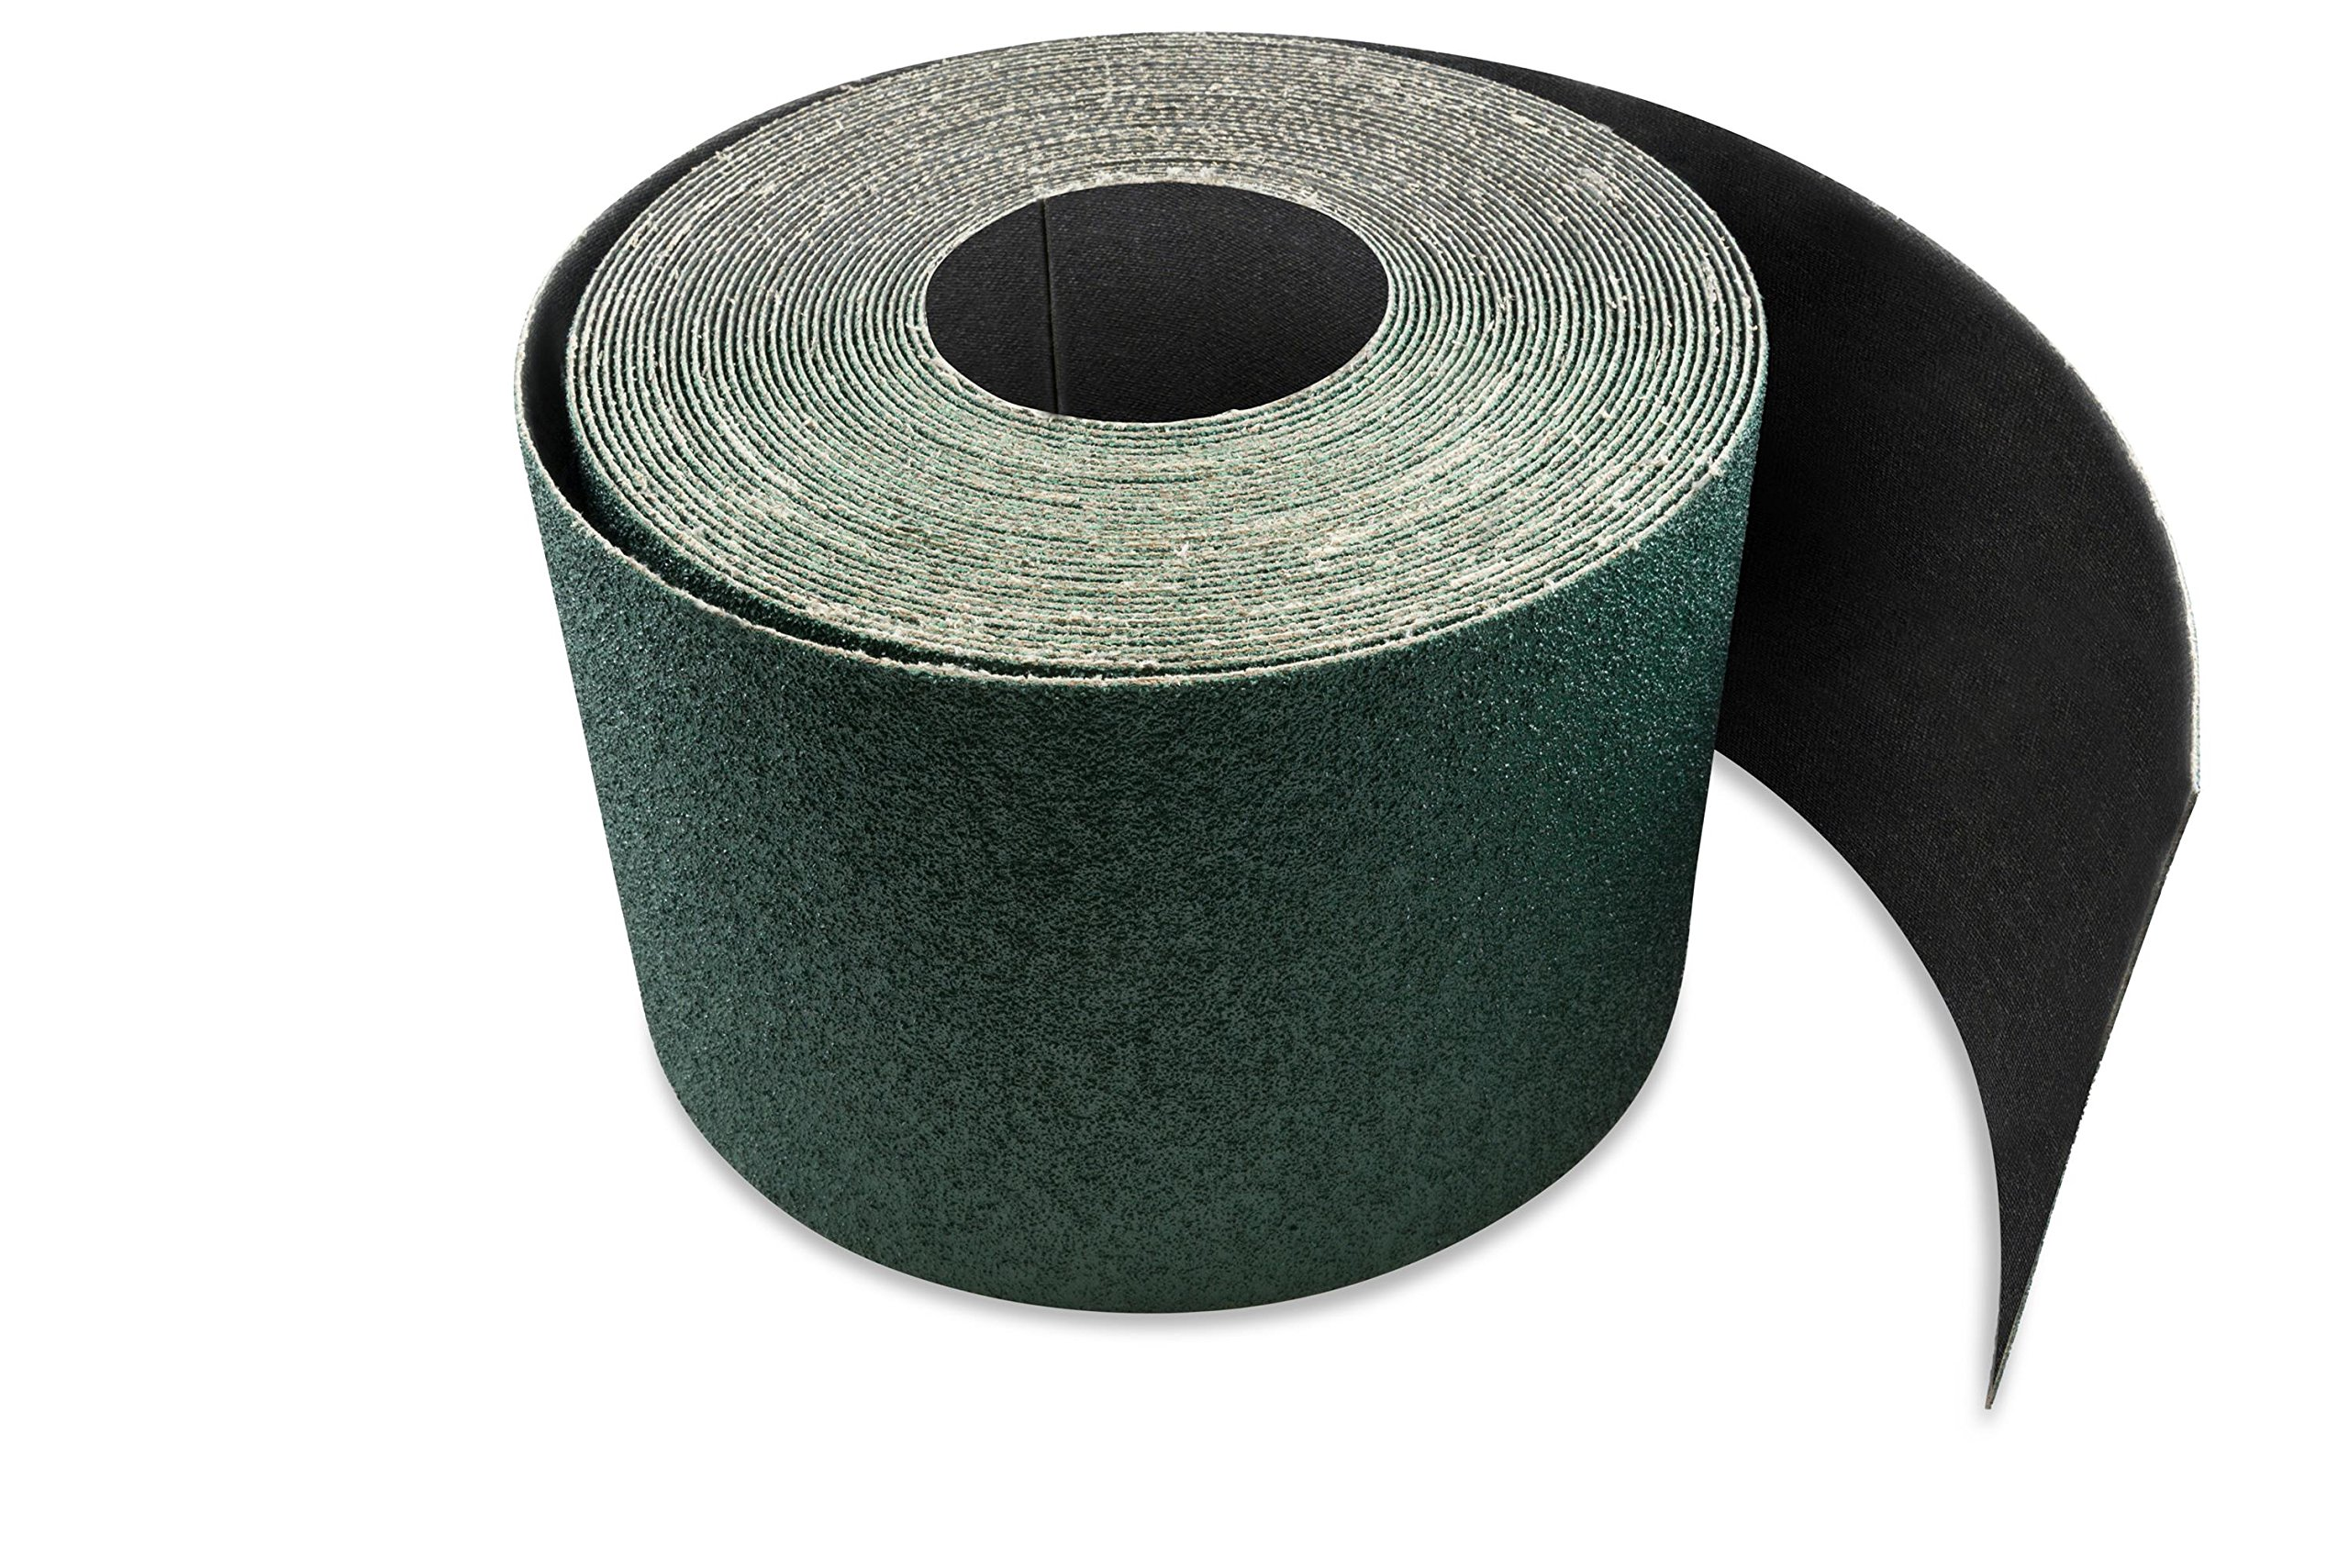 6 Inch X 50 FT Cloth Zirconia Ready-to-Cut Cloth Sanding Roll for Drum Sanders by Red Label Abrasives